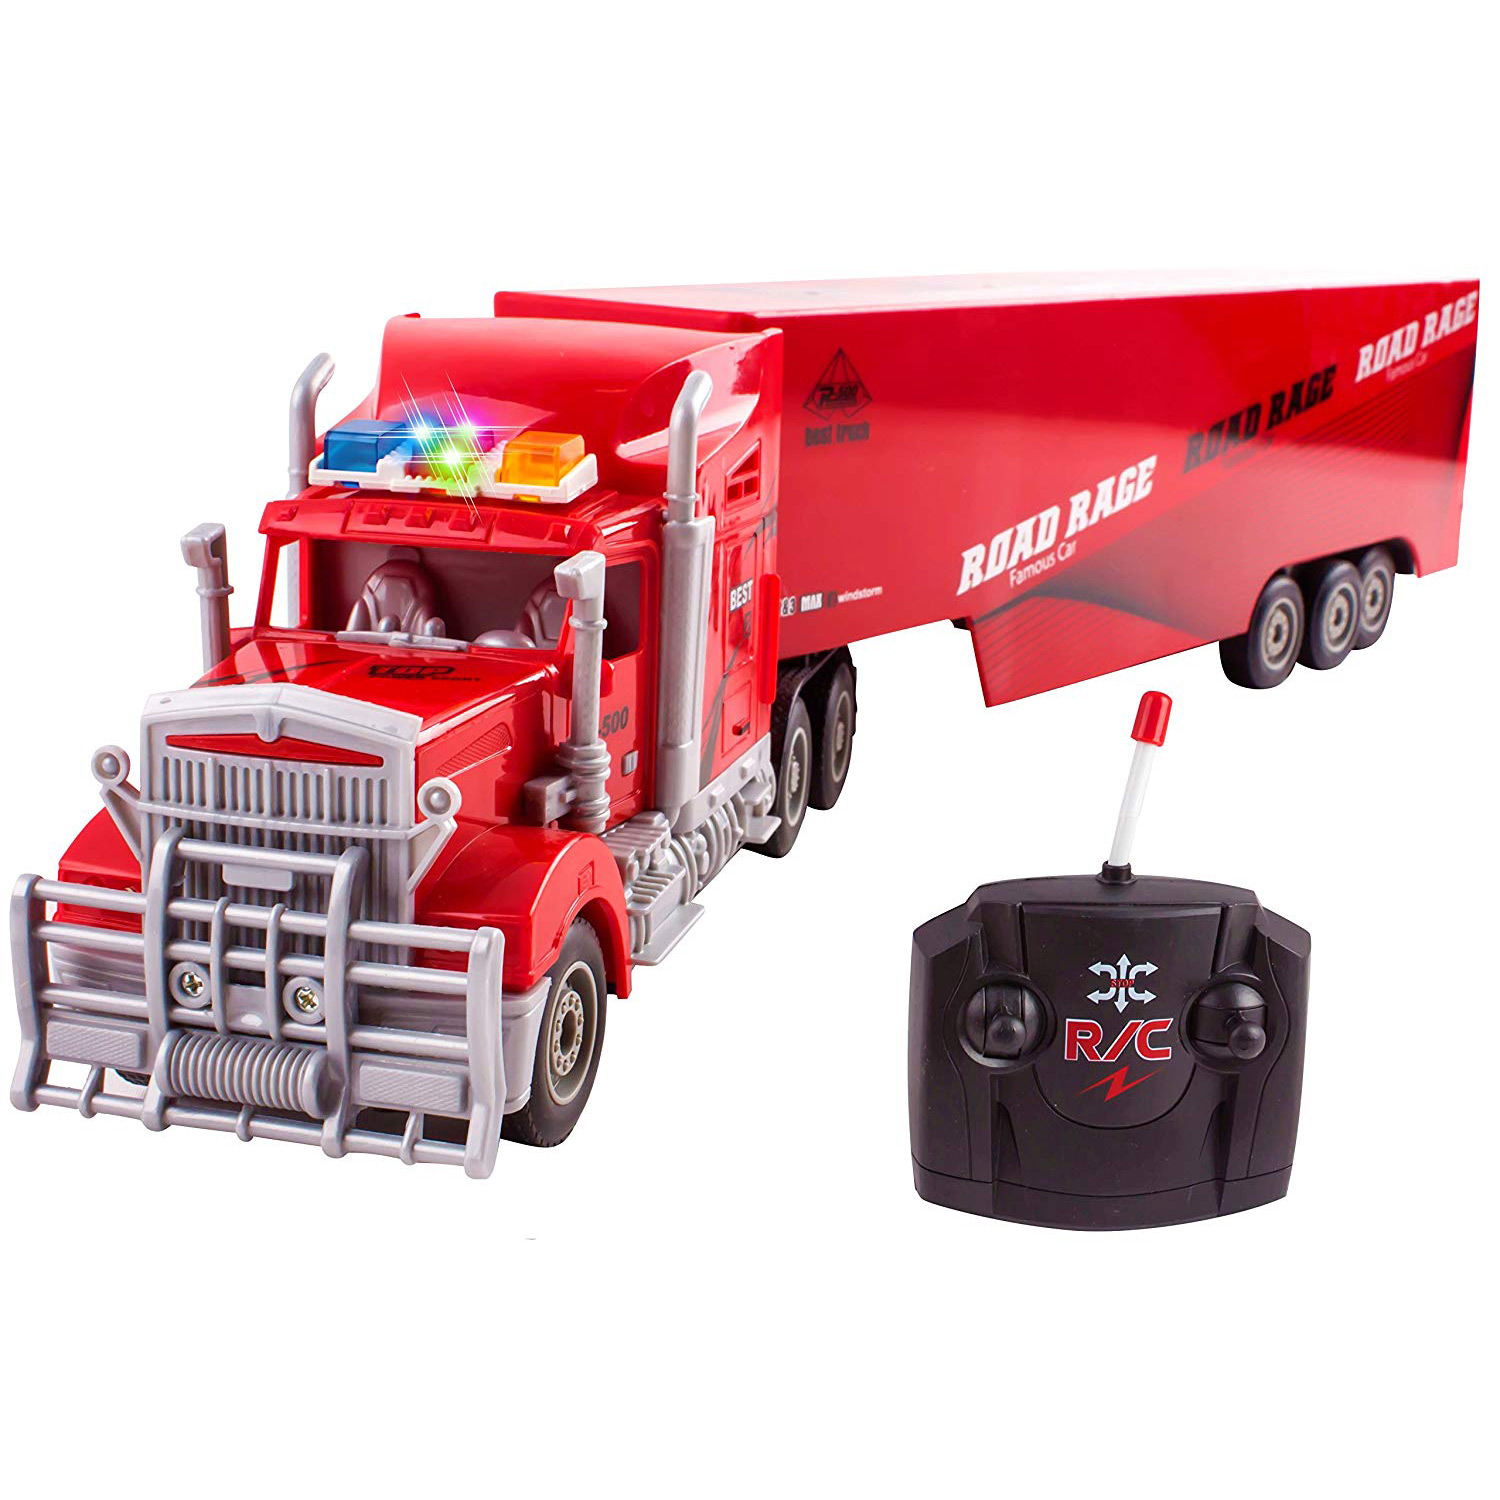 "Toy Semi Truck Trailer 23"" Electric Hauler Remote Control RC Children's Transporter Ready To Run Full Cargo Perfect Big Rig For Kids Toys (Red)"